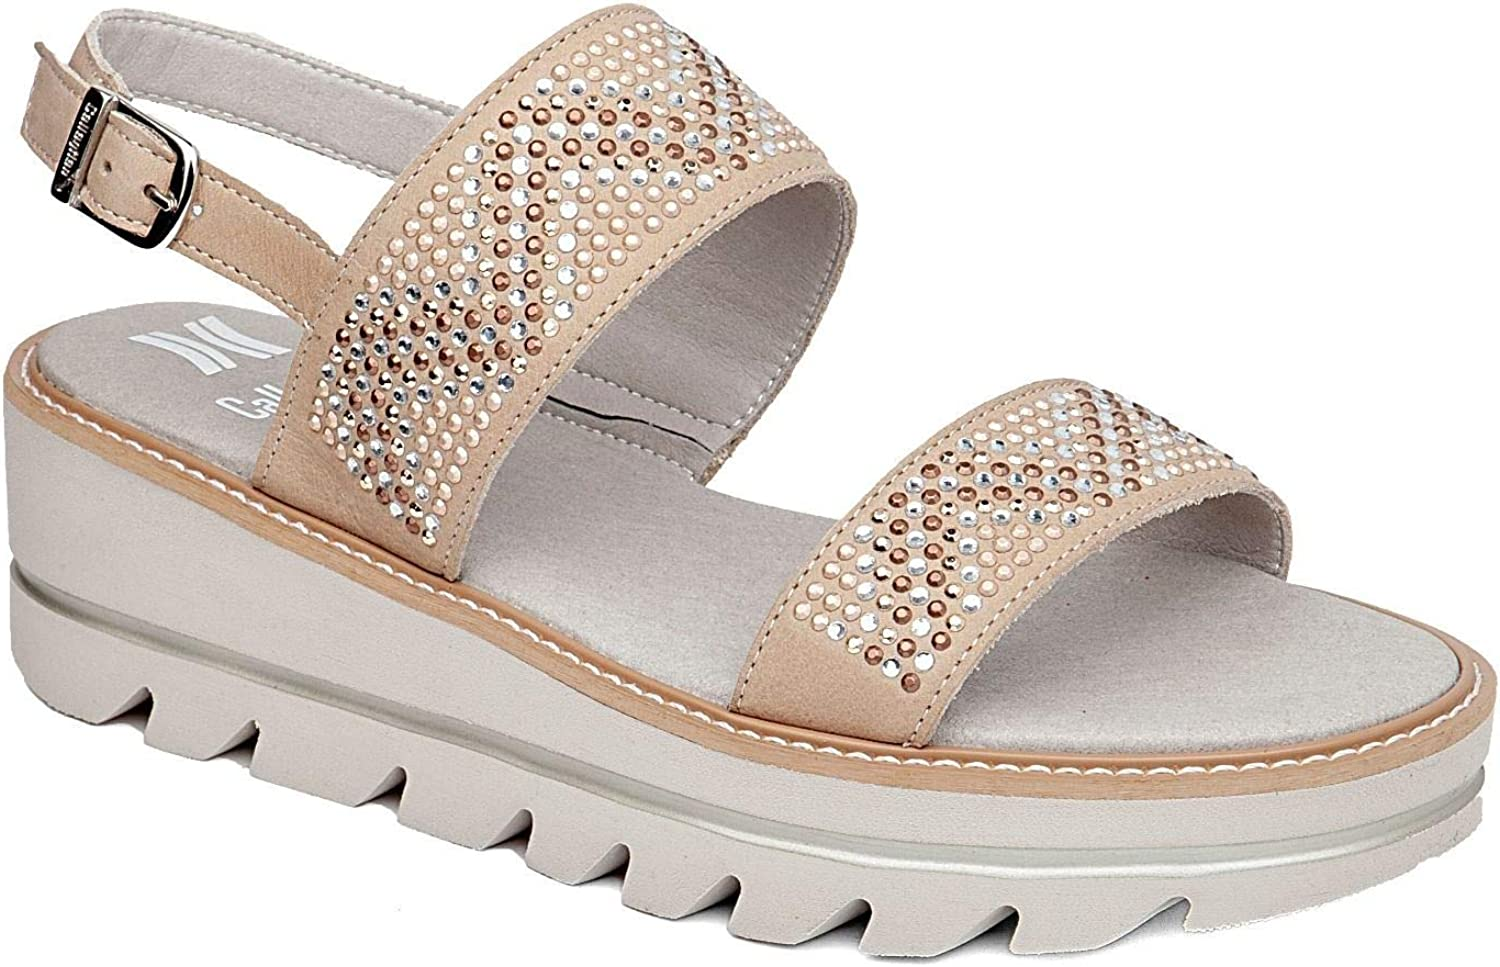 CALLAGHAN 22707 Long Beach Women's Beige Leather Wedge Sandals